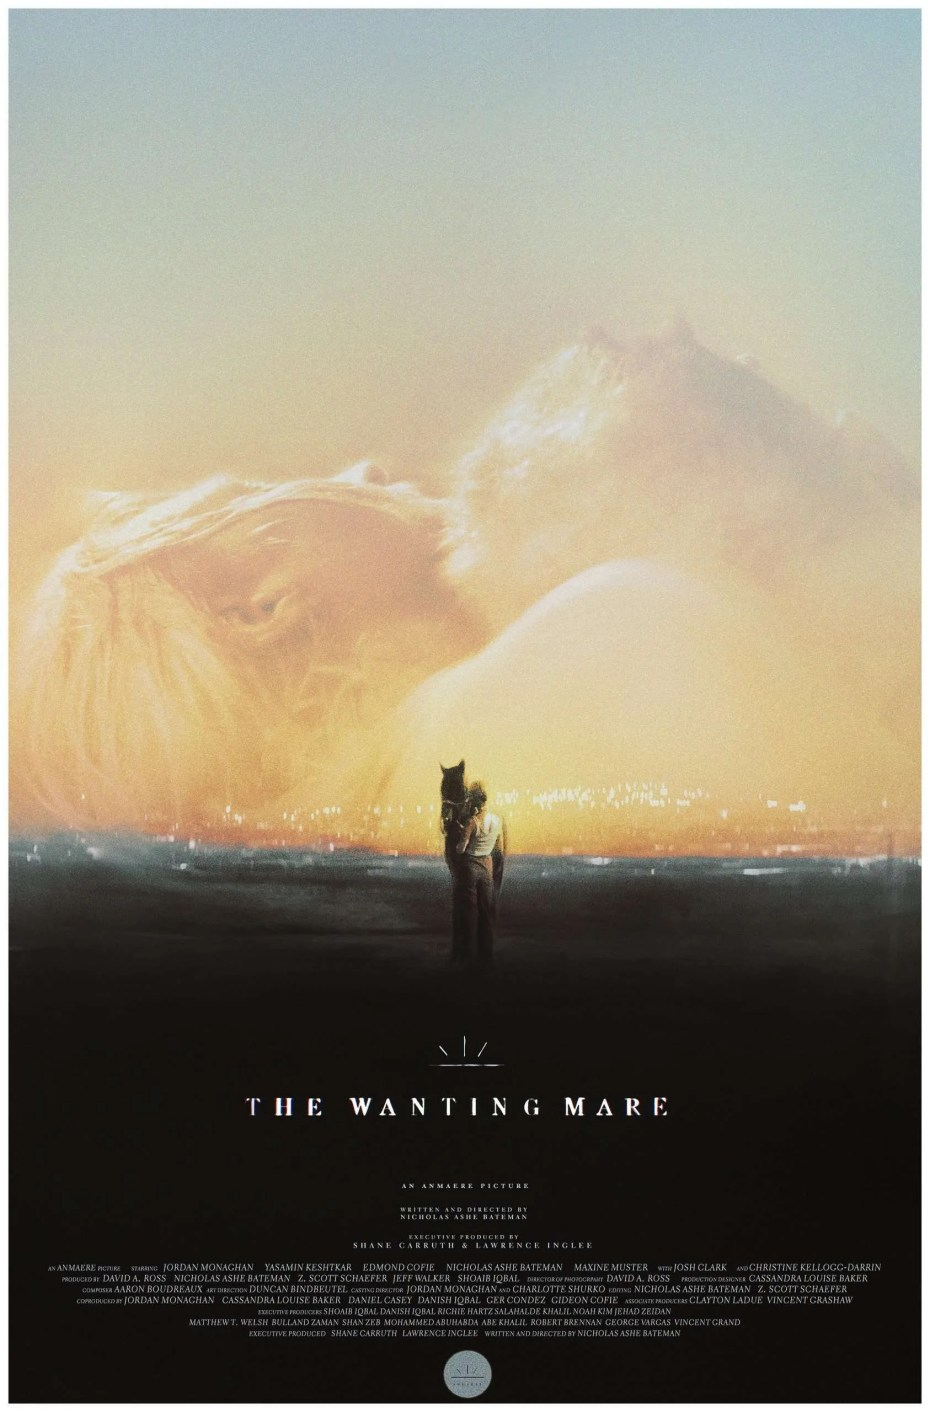 The Wanting Mare